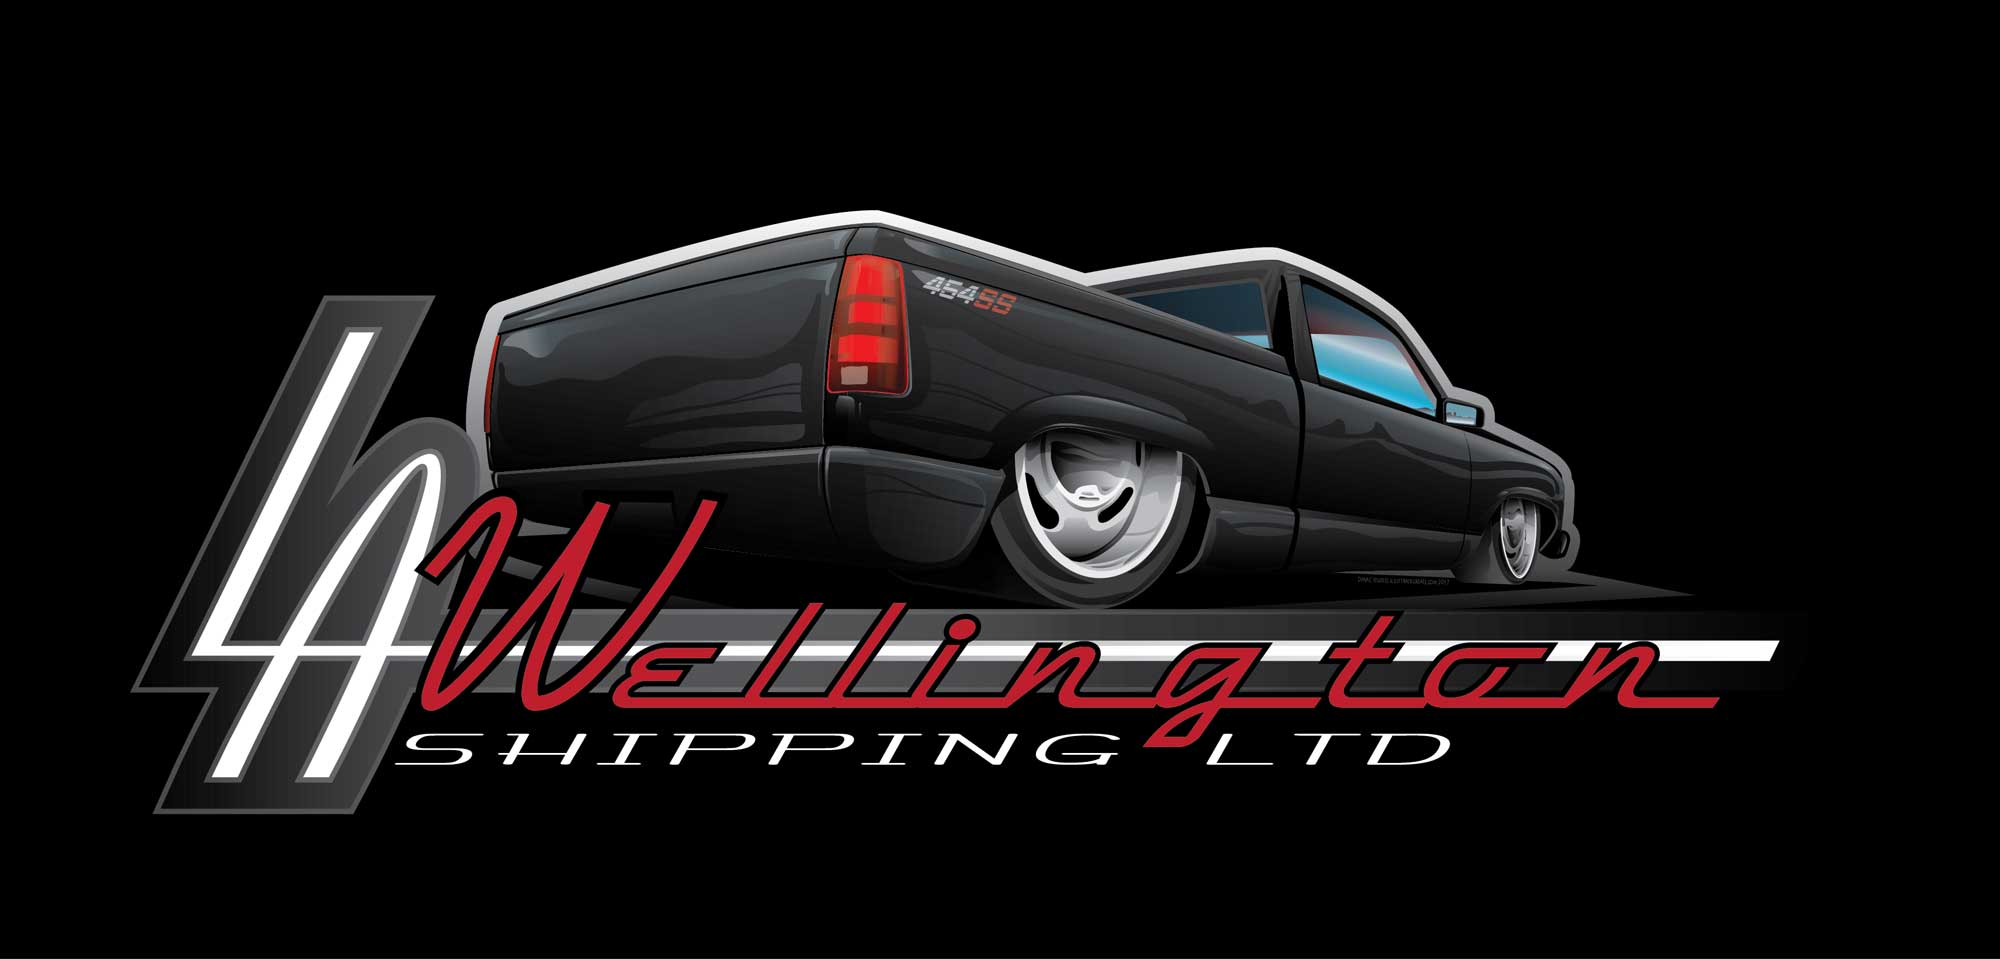 Logo Design and Illustration Papamoa Tauranga, Auckland, Hot Rod, Importer New Zealand, Vector graphics 454 SS Chevy truck